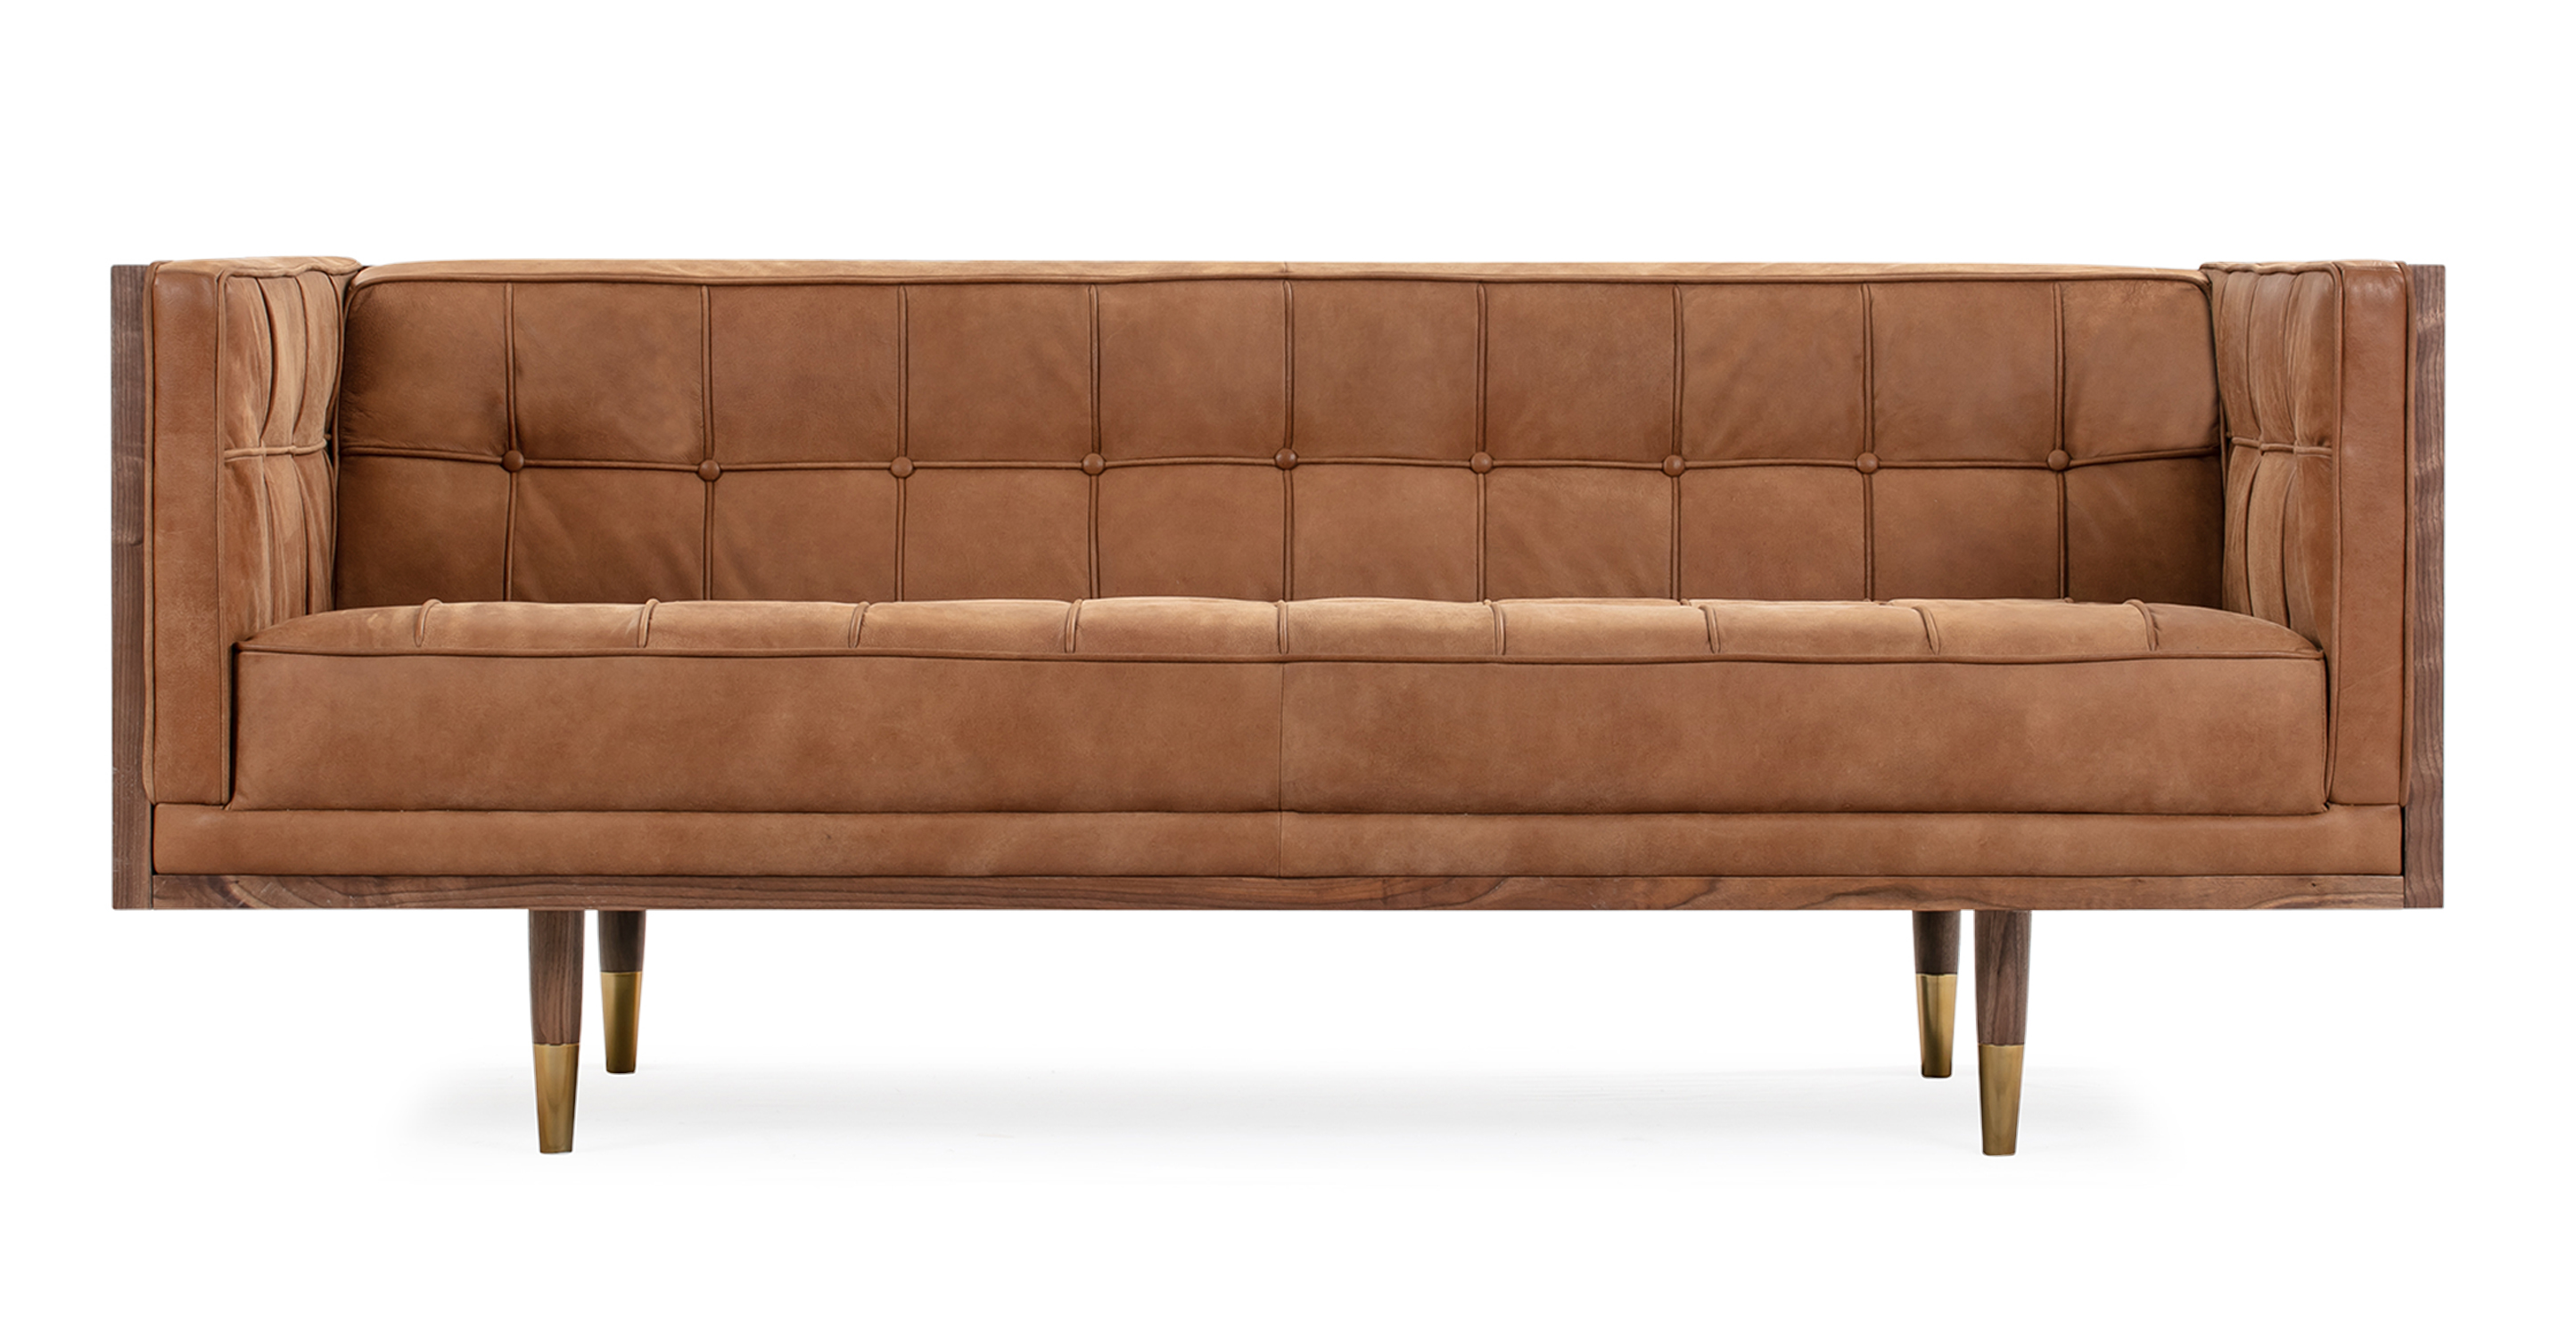 "Woodrow Box 71"" Leather Sofa, Walnut/Cognac"